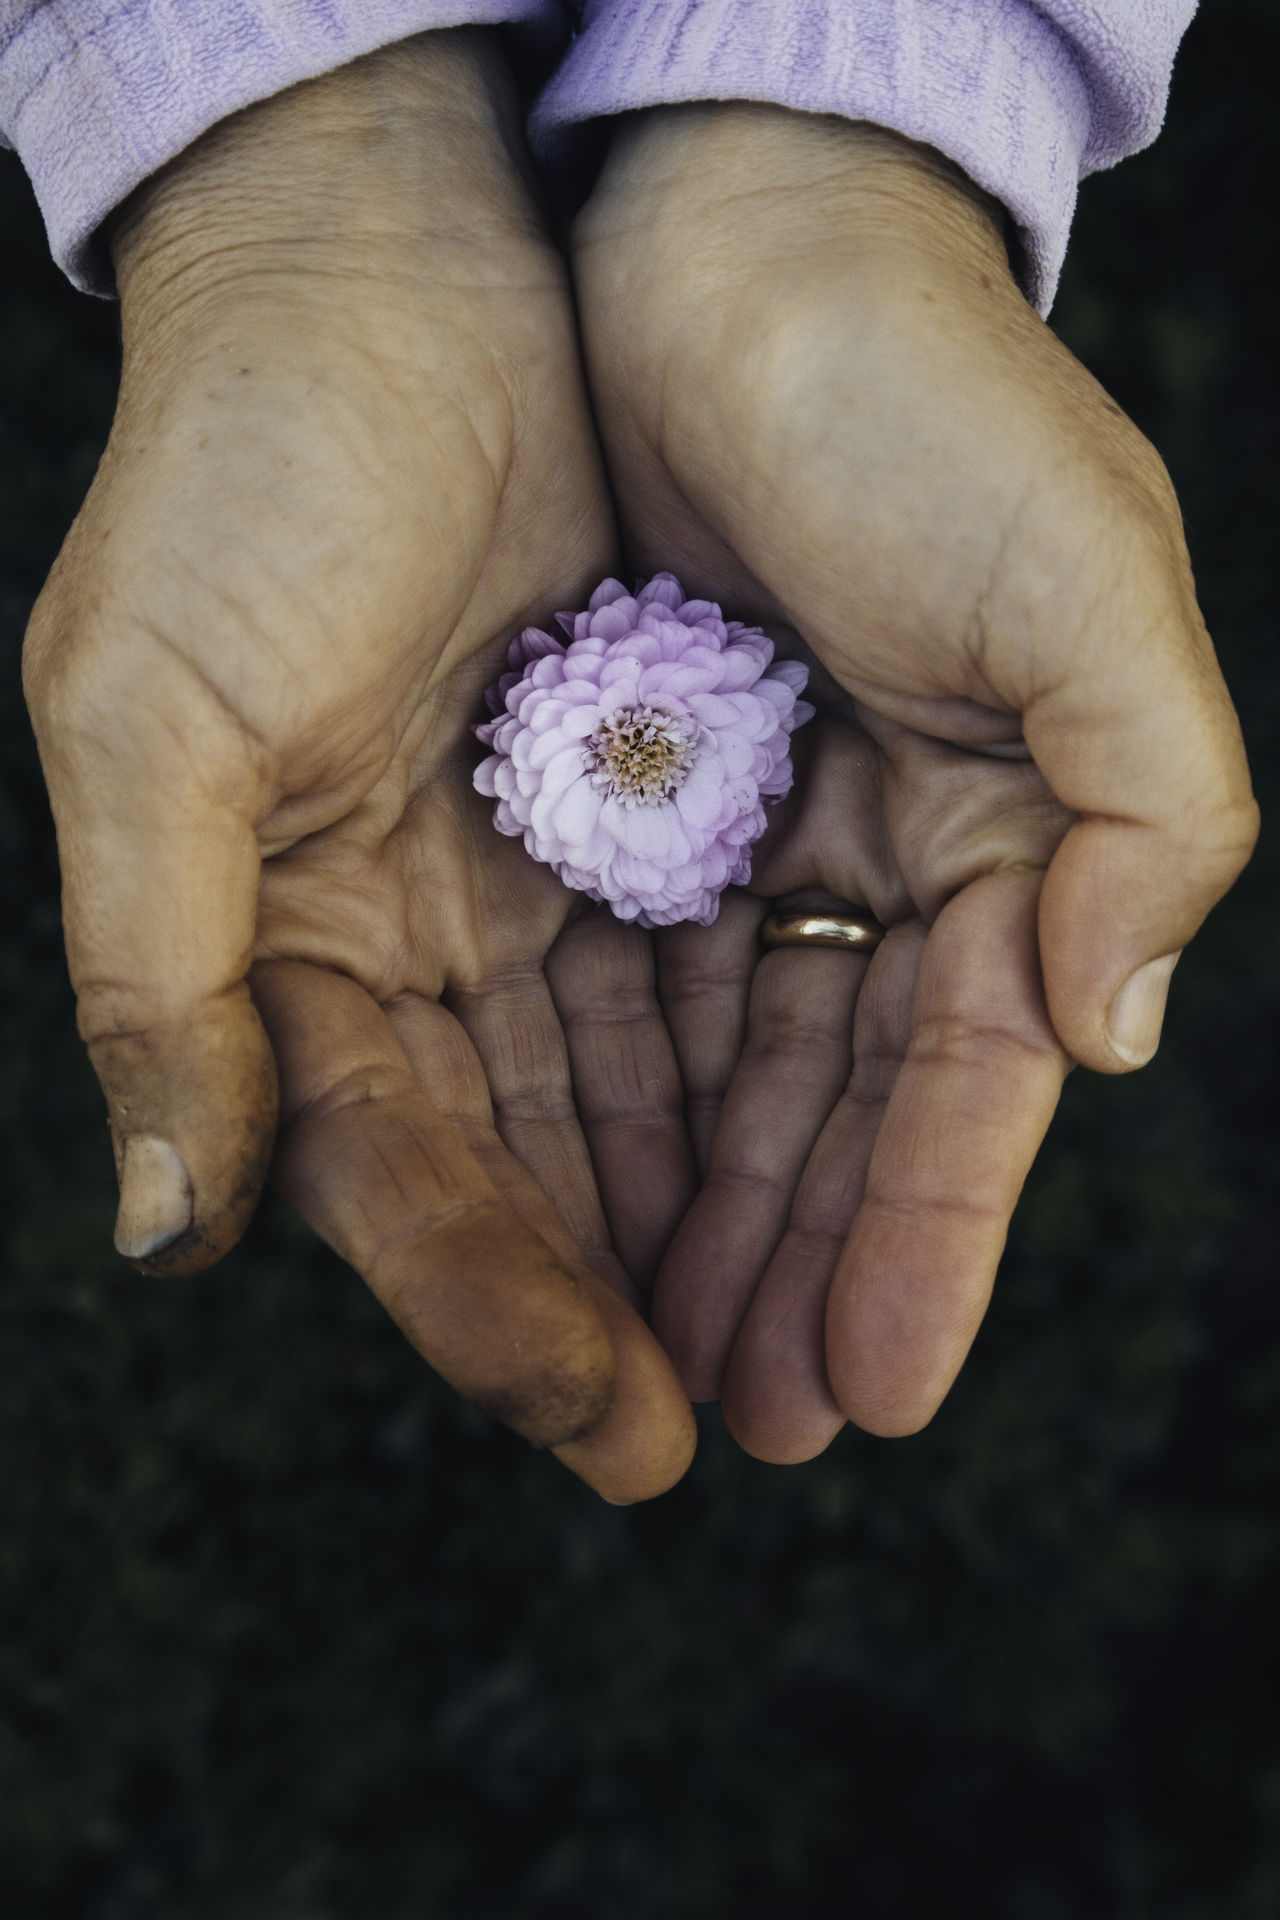 Adult Adults Only Beauty In Nature Close-up Day Flower Flower Head Fragility Freshness Green Color Holding Human Body Part Human Hand Nature One Person Outdoors People Working Hands Working Woman